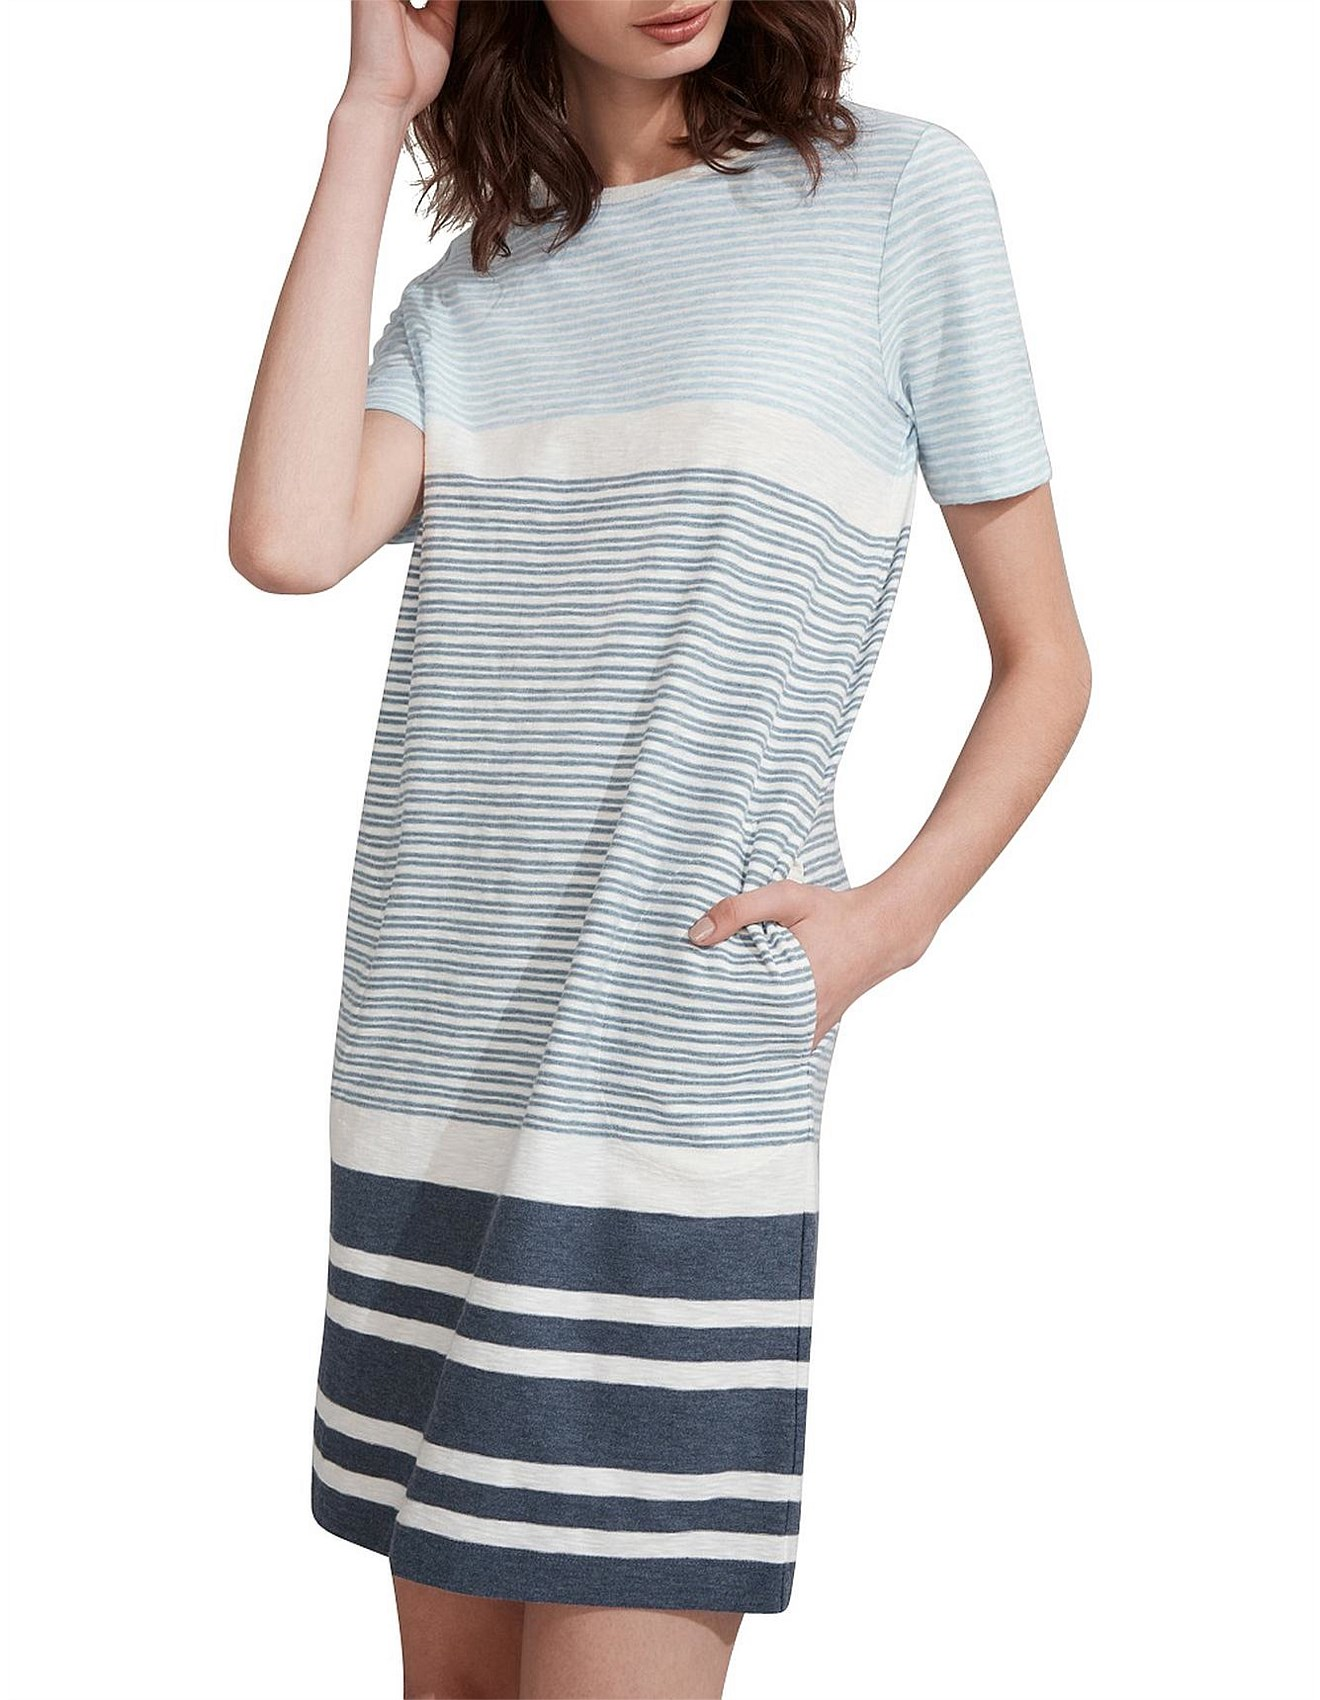 153ffe3d Day Dresses | Buy Casual Summer Dresses Online | David Jones - Organic Cotton  Striped T-Shirt Dress